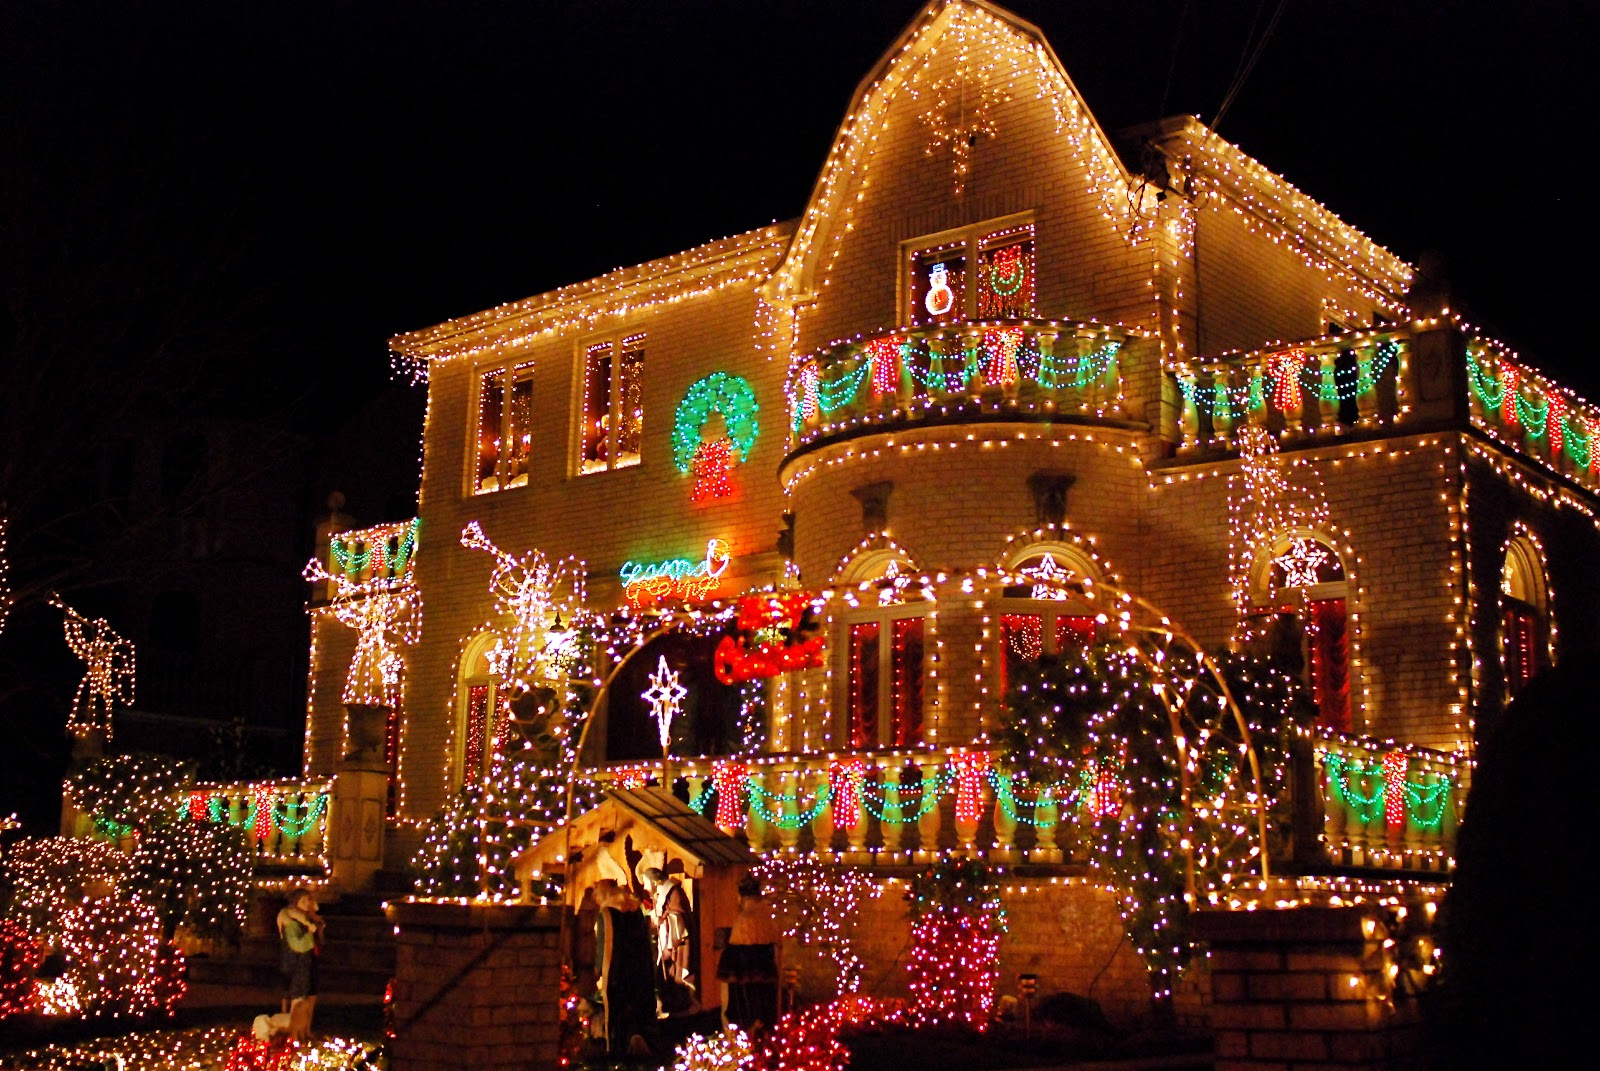 nyc nyc brooklyn 39 s dyker heights home christmas light. Black Bedroom Furniture Sets. Home Design Ideas